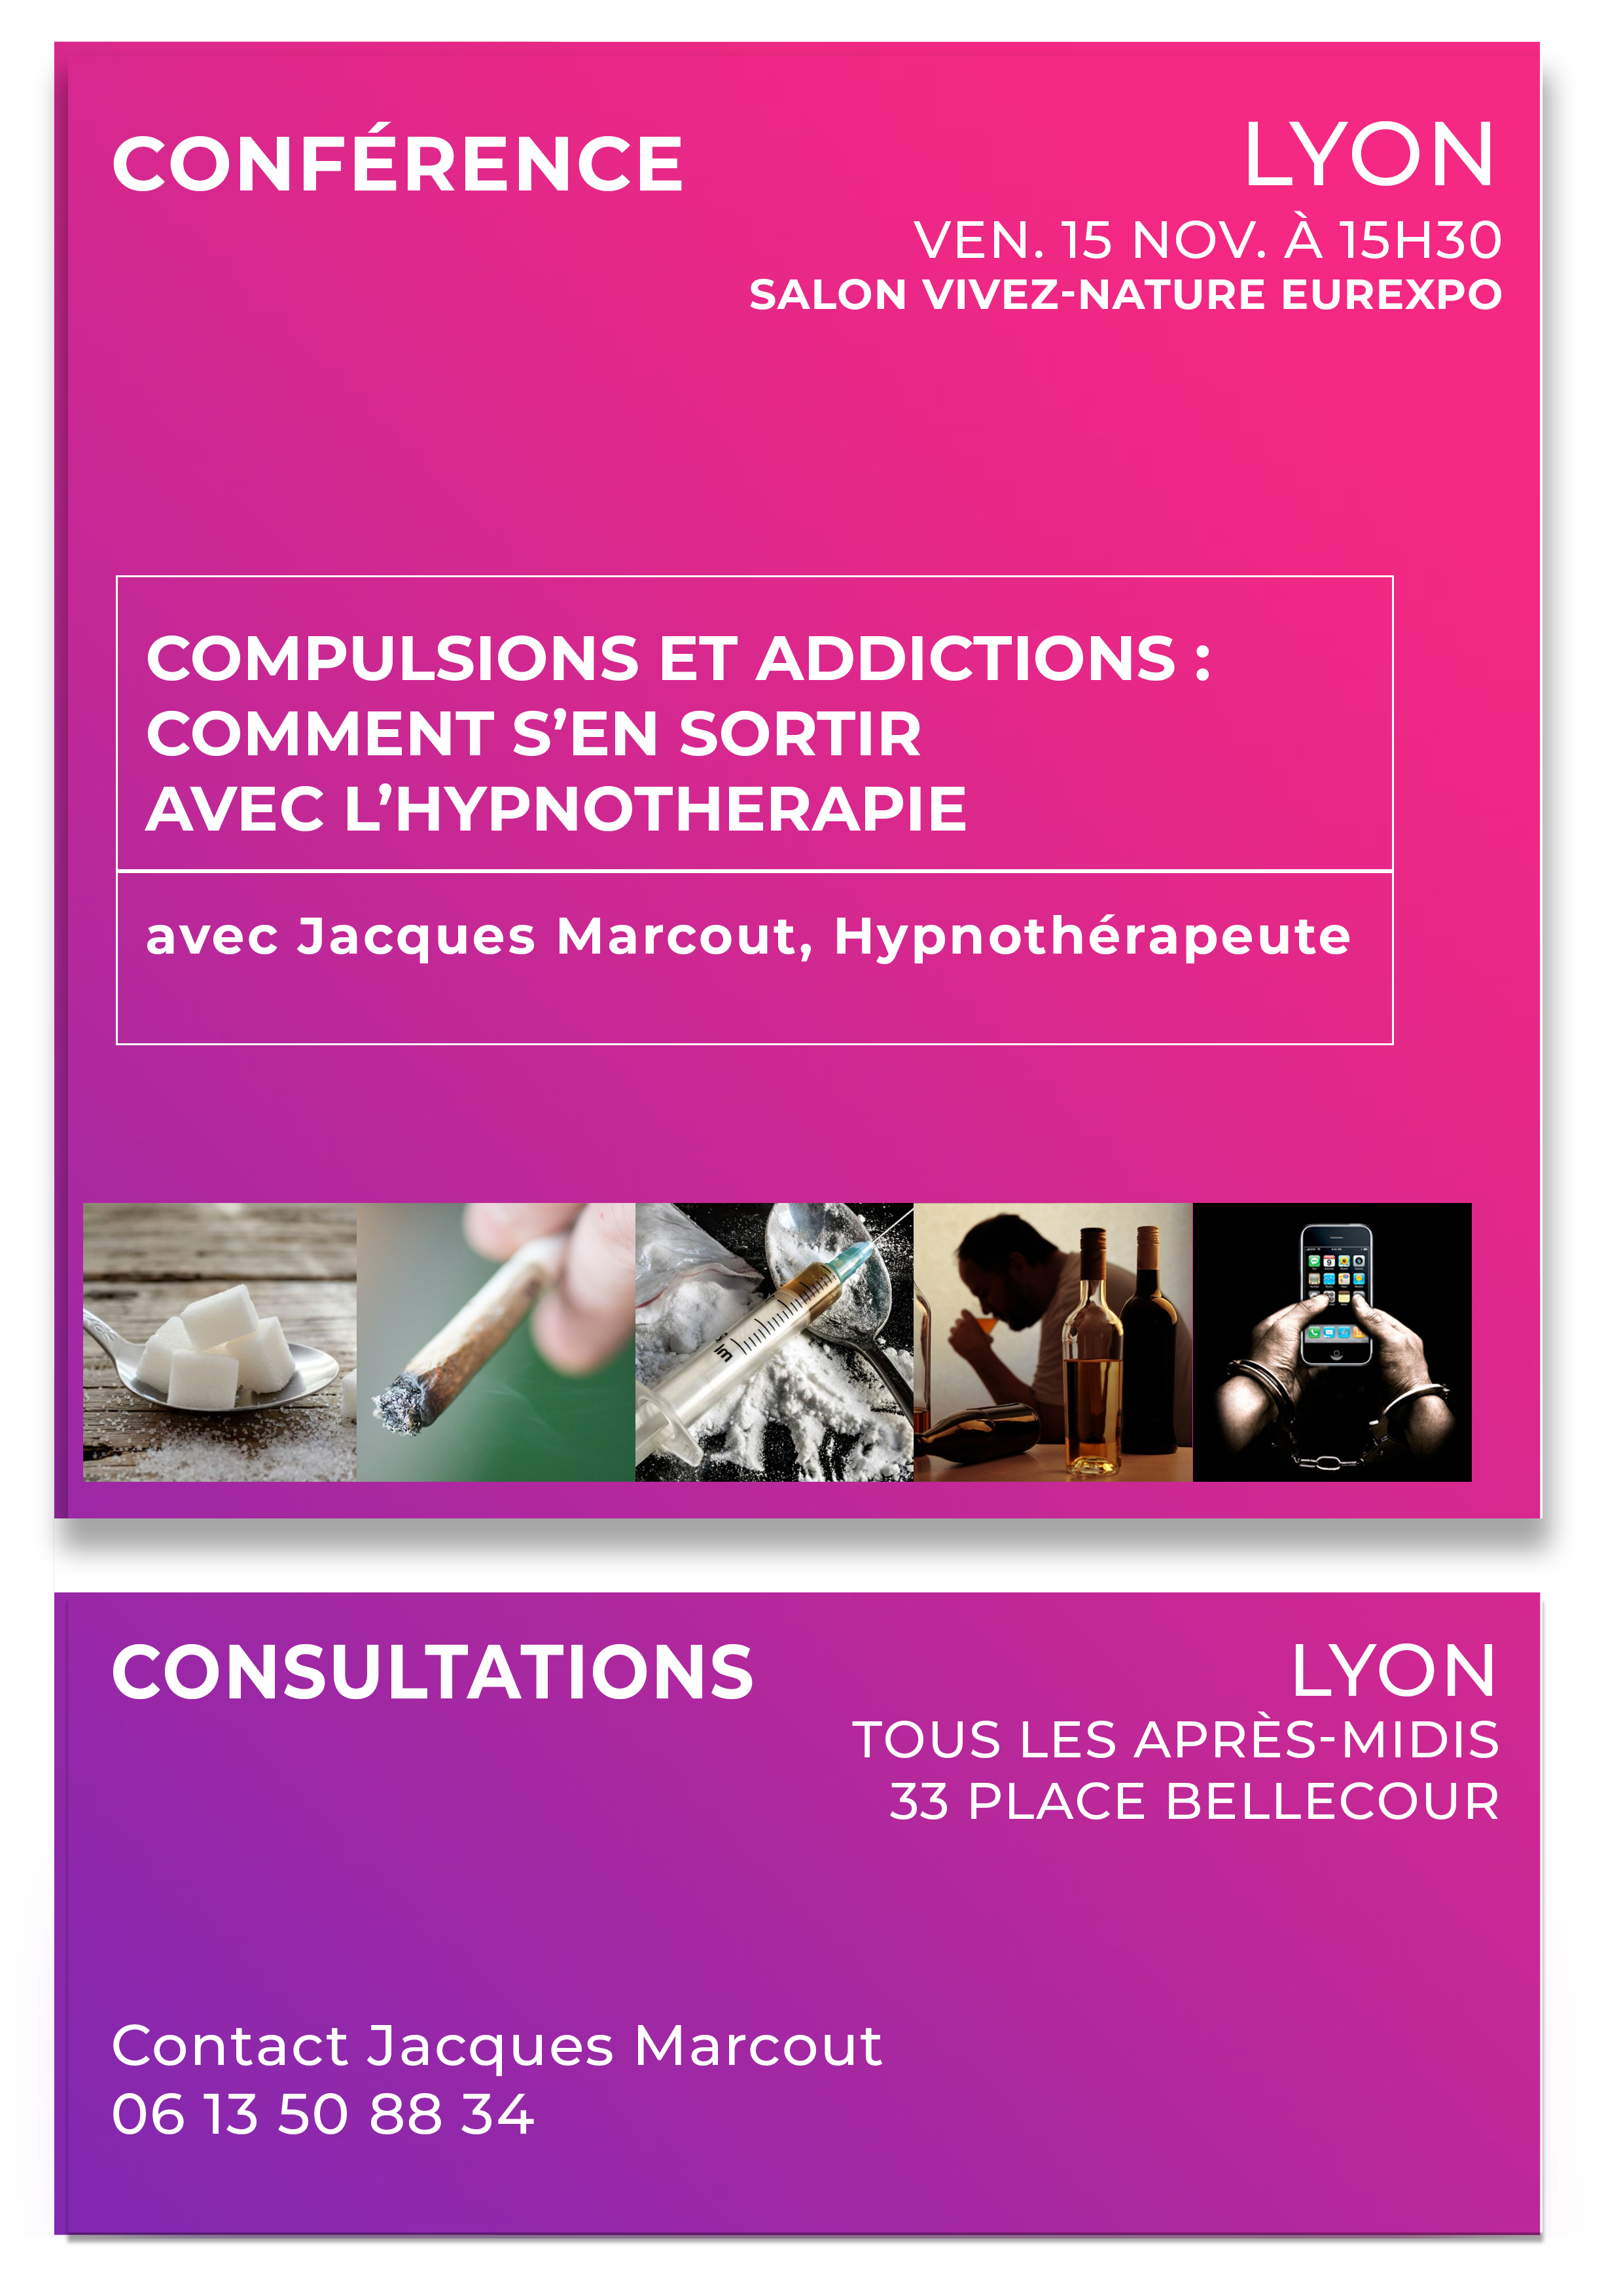 Conference et consultations Lyon2